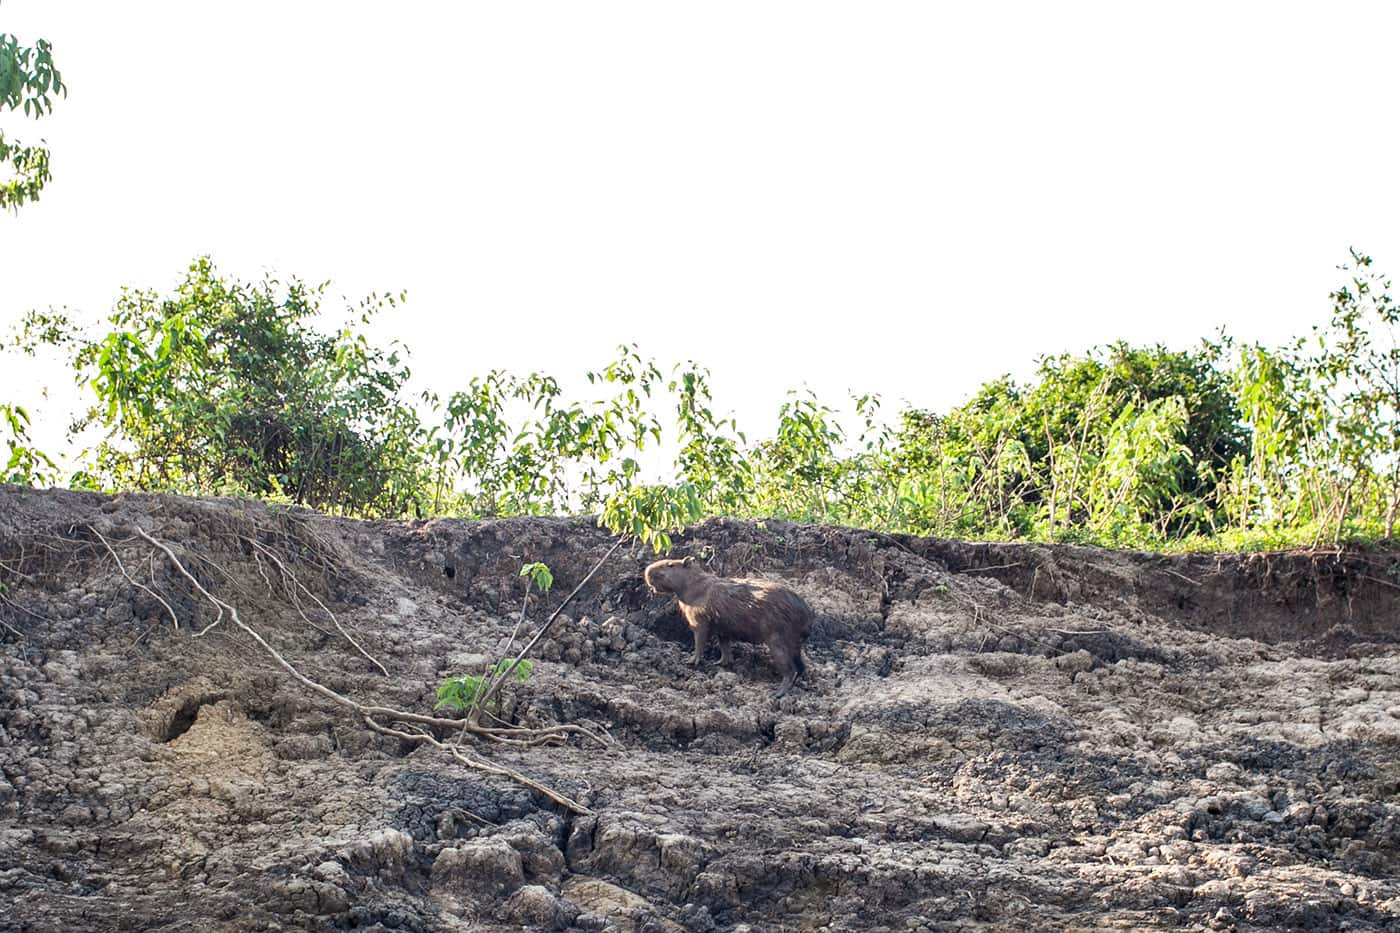 Capybara - The Pampas in the Bolivian Amazon